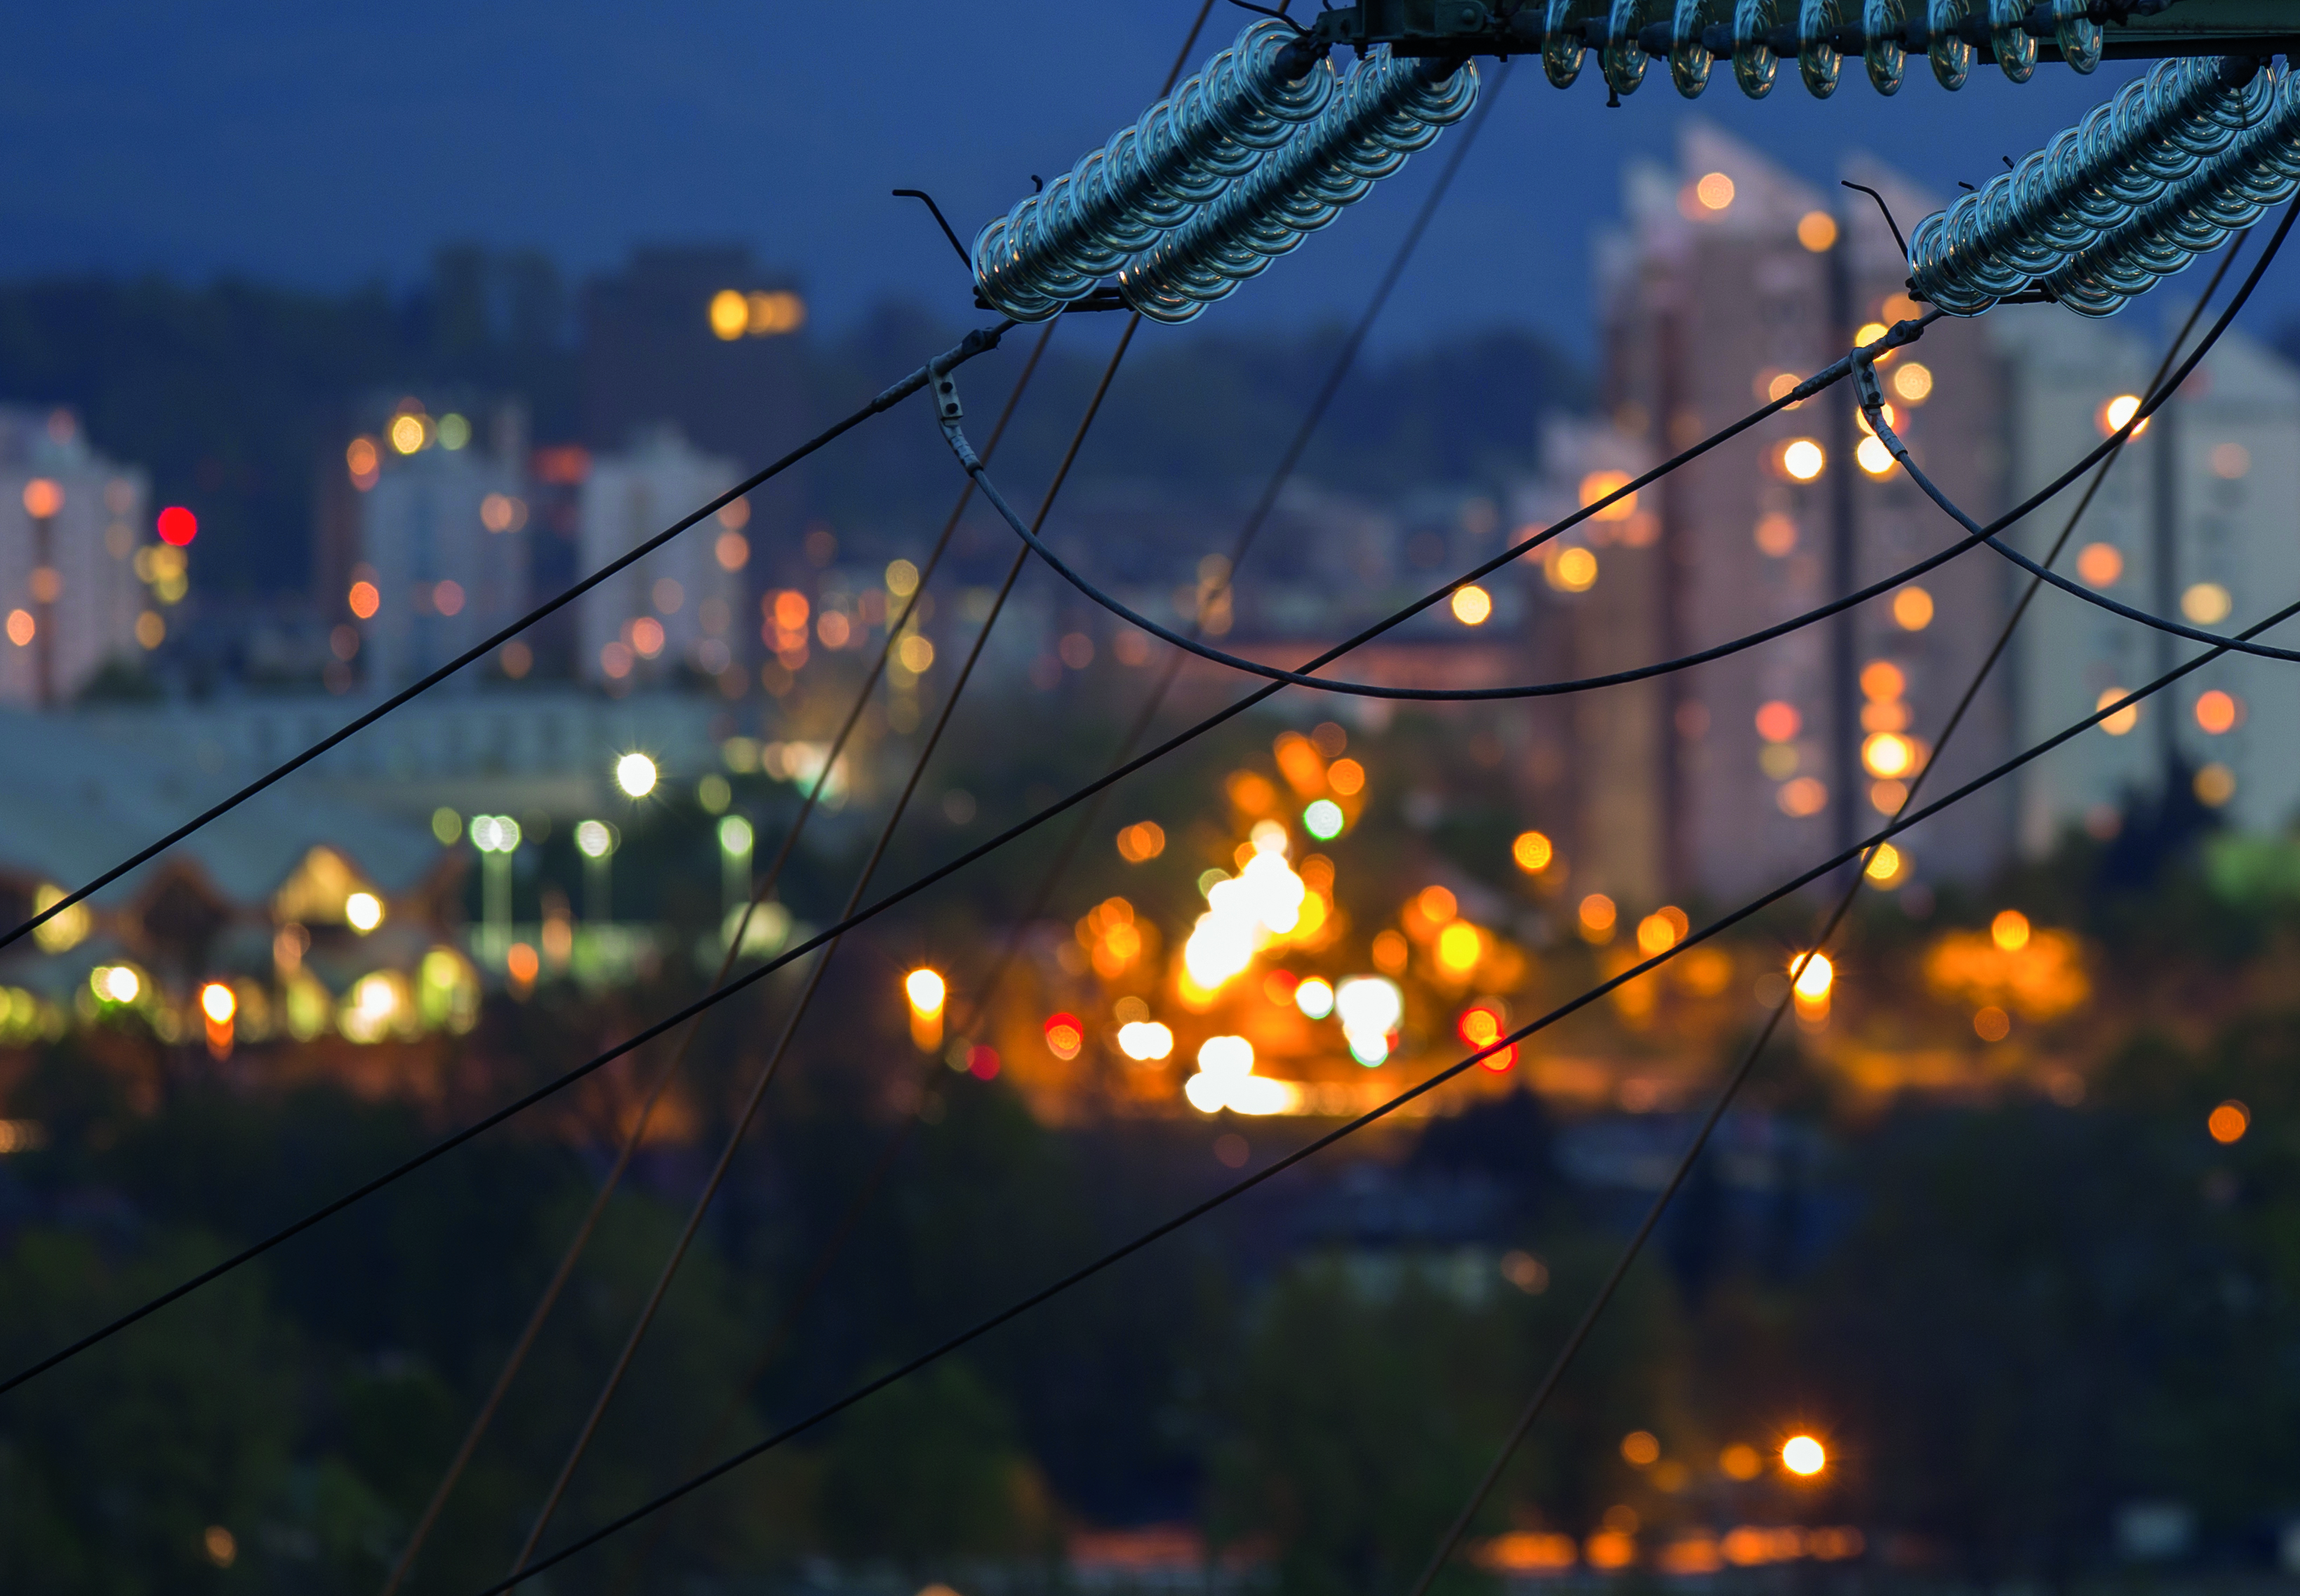 Pylon-and-city-lights.-Electric-infrastructure